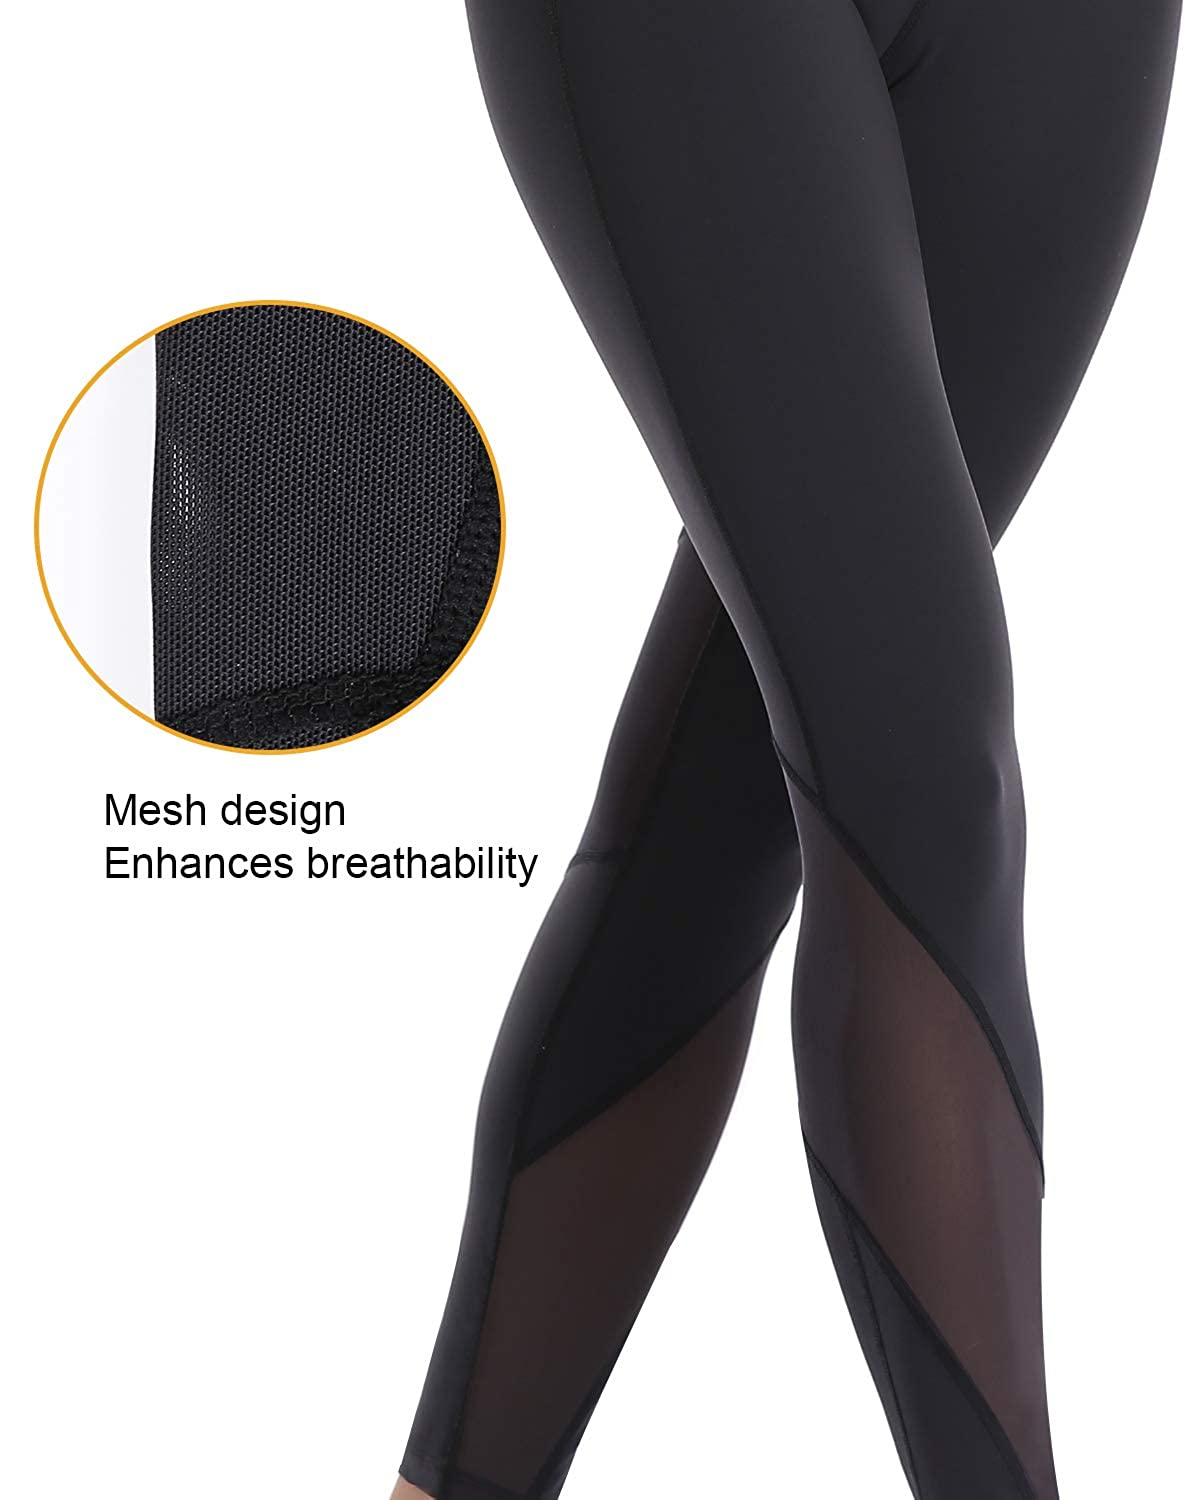 32e-SANERYI Professional Running Leggings Nylon Lycra Performance Full Length Pants for Women with Mesh Design